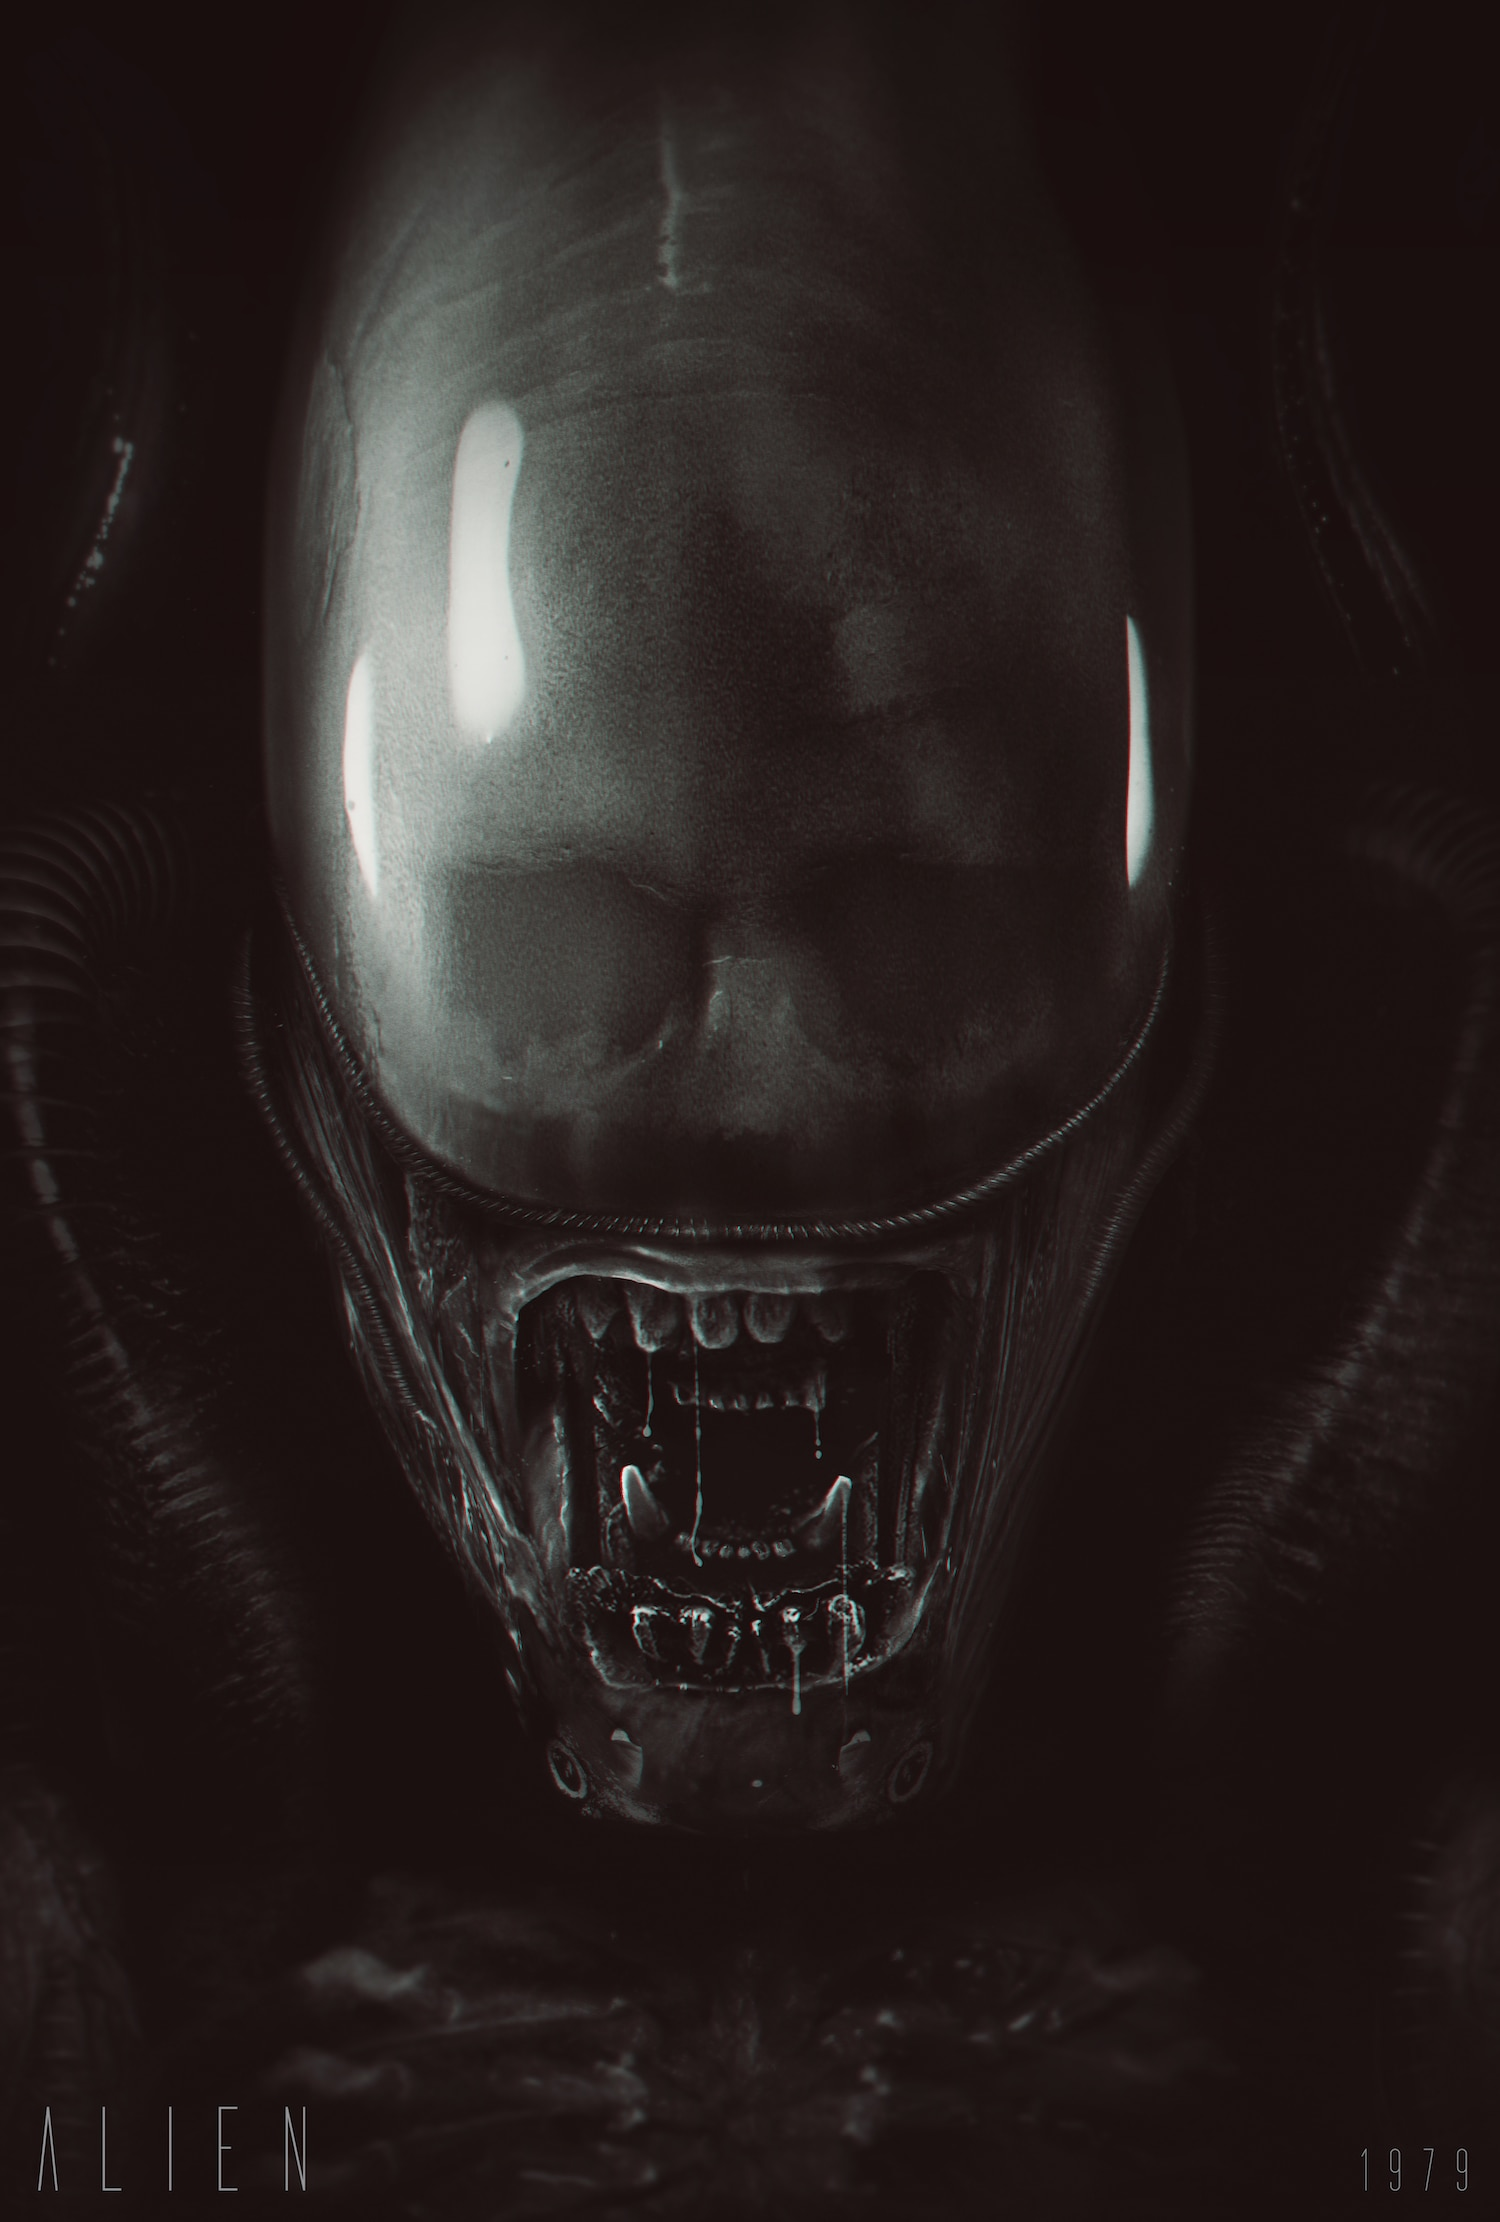 AlienBod S6 - David Graham Has Created Another Fantastic Alien Poster